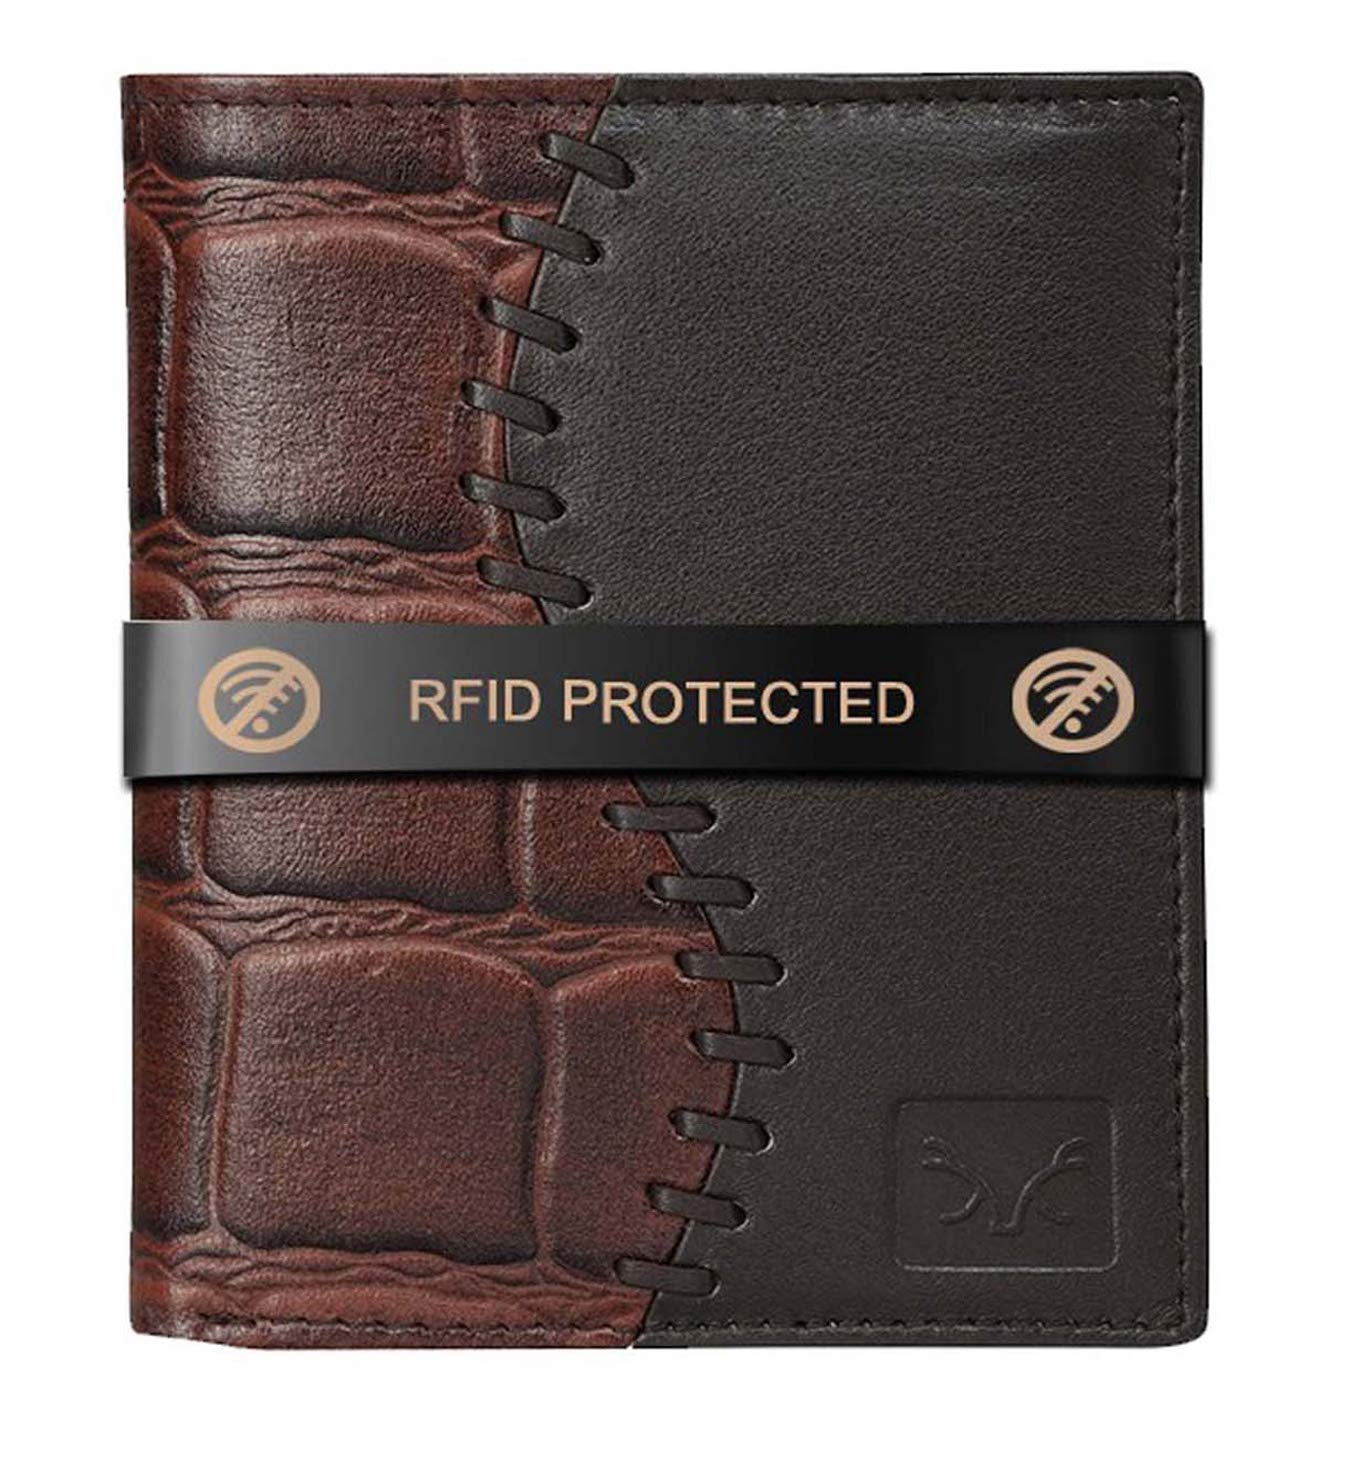 AL FASCINO RFID Leather Wallet/Purse for Men